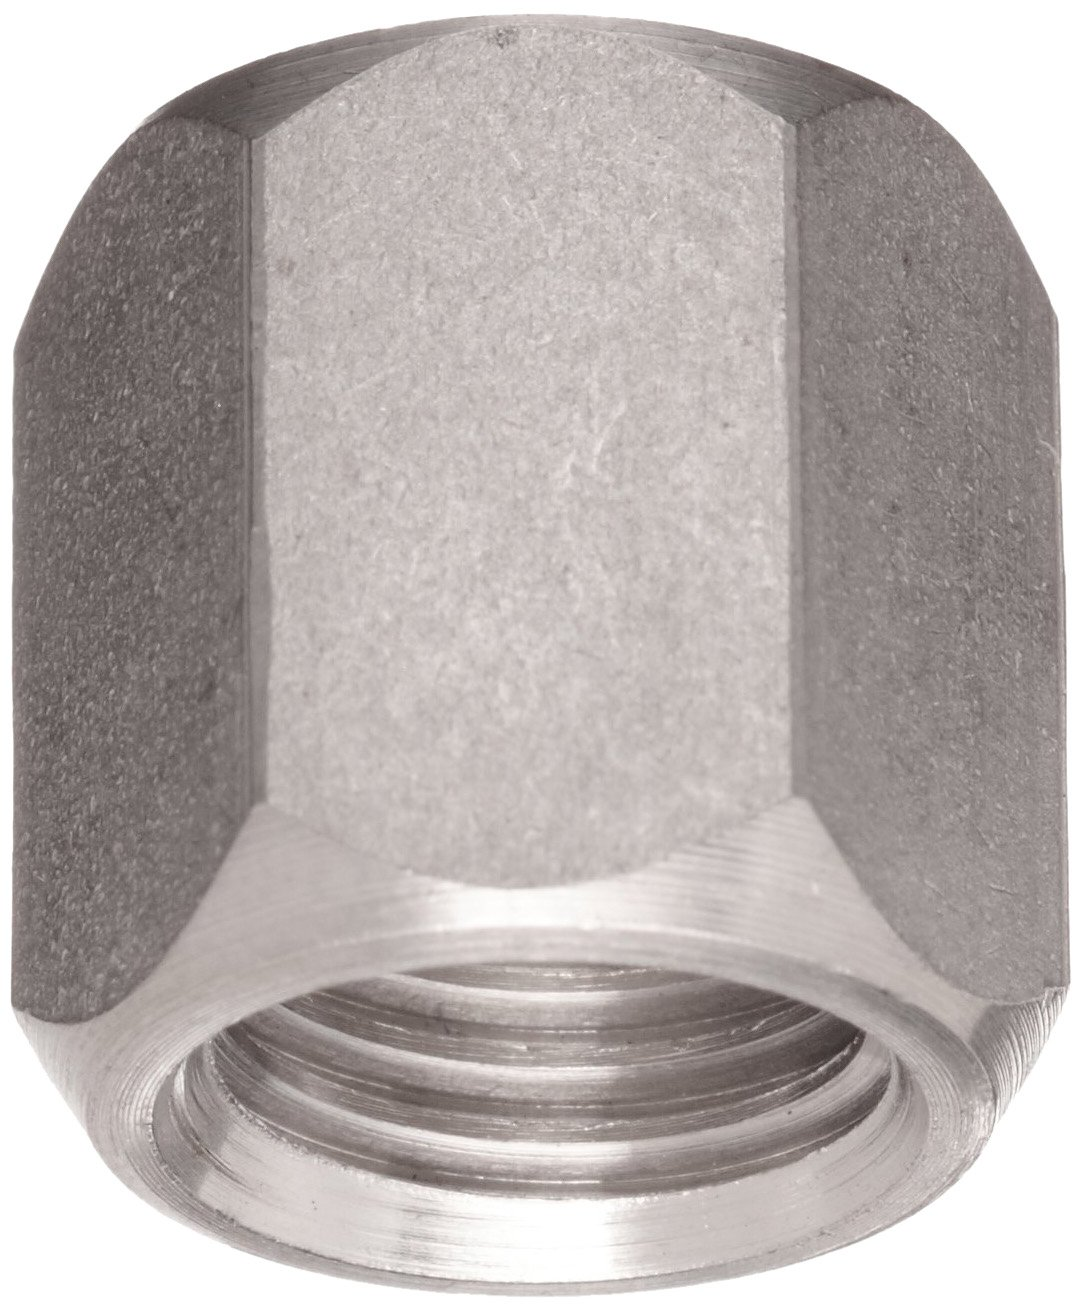 "Brennan 0304-C-06-SS, Stainless Steel JIC Tube Fitting, Cap Nut, 3/8"" Tube OD"